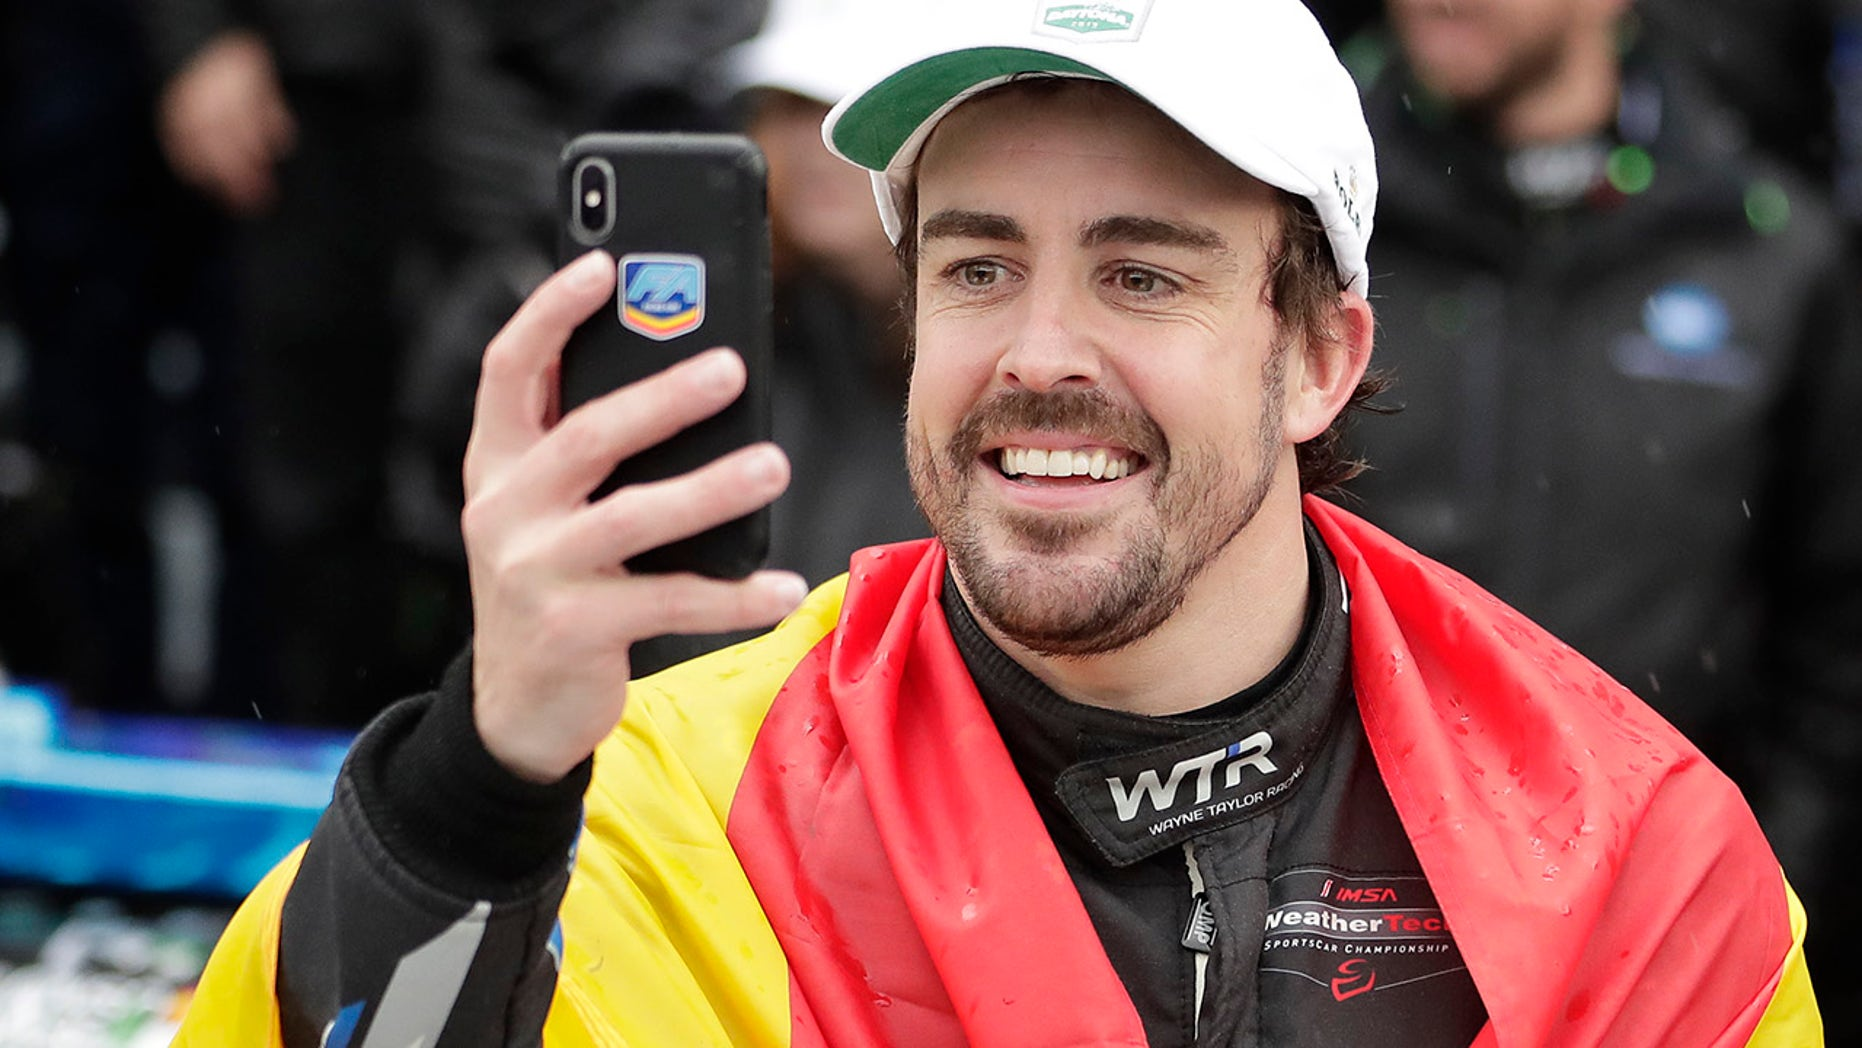 Alonso claims maiden Daytona 24-hour victory